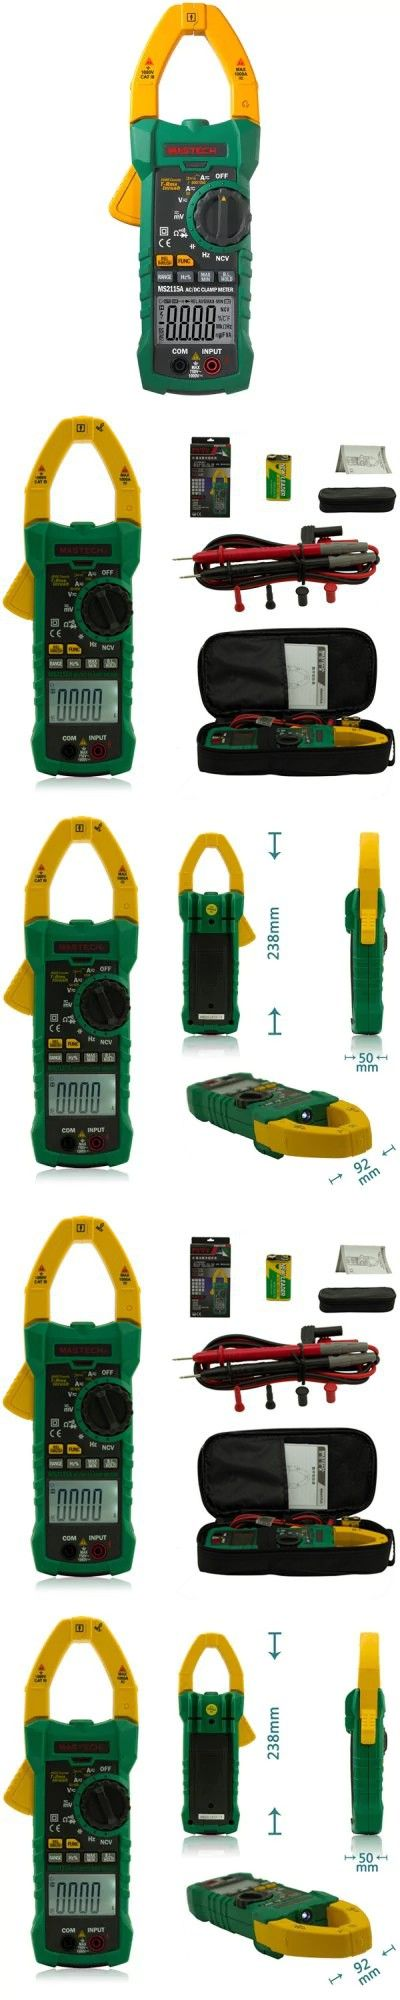 MASTECH MS2115A Digital Clamp Meter Inrush Current 6000 Counts True RMS Data Holding -$96.3